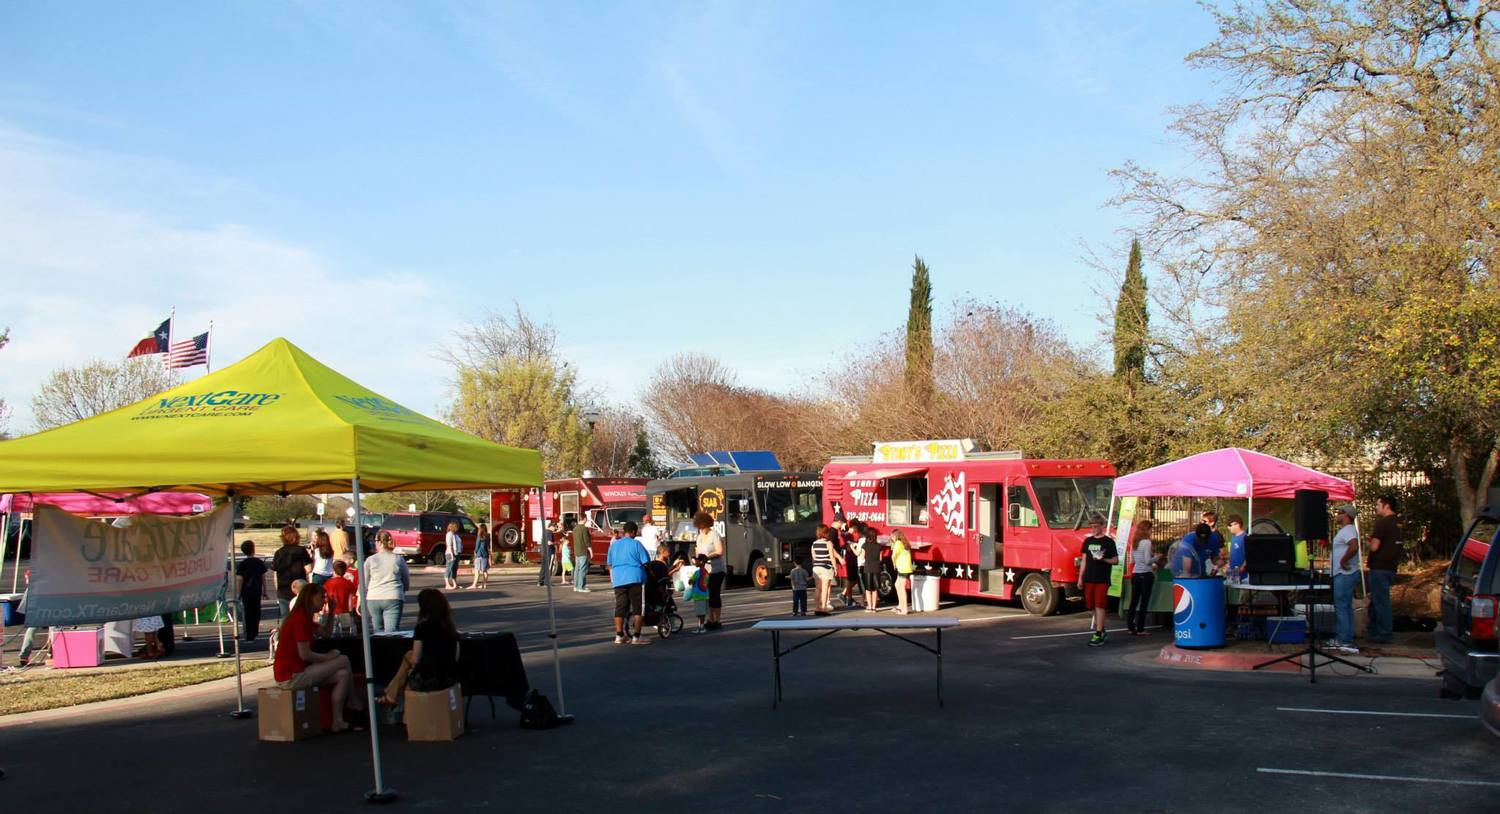 The Community Music and Food Truck festival is one of several activities in that happens in Avery Ranch throughout the year.